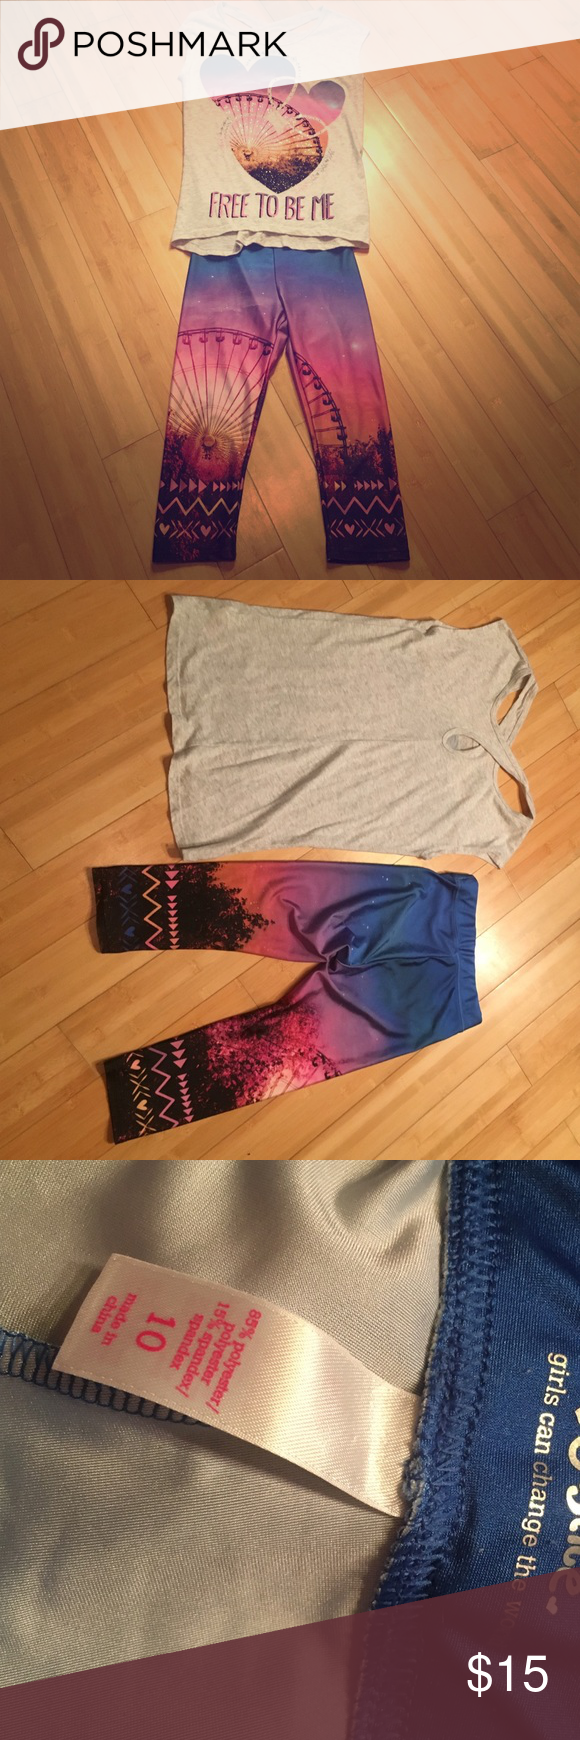 Justice matching set This has never been worn. No rips or stains. Perfect condition. Both top and bottoms are stretchy. Very cute! Justice Matching Sets